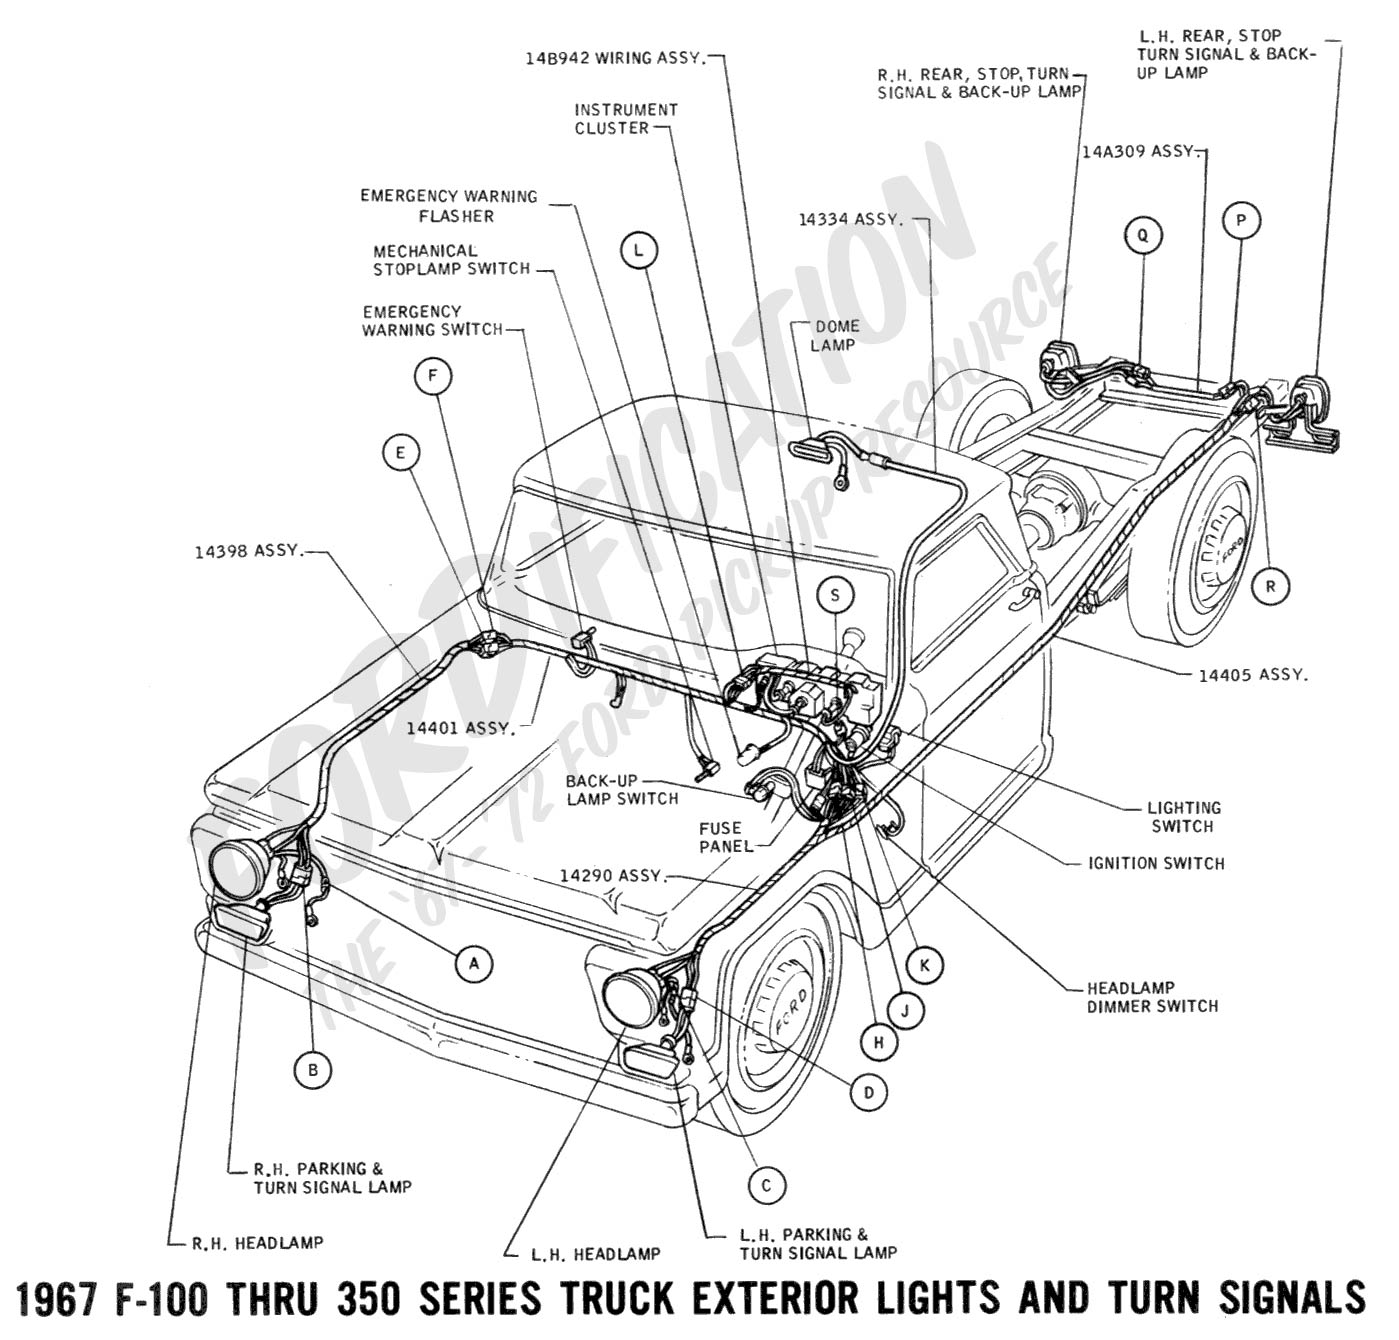 wiring 1967extlights01 ford truck technical drawings and schematics section h wiring 2006 ford f350 tail light wiring diagram at readyjetset.co